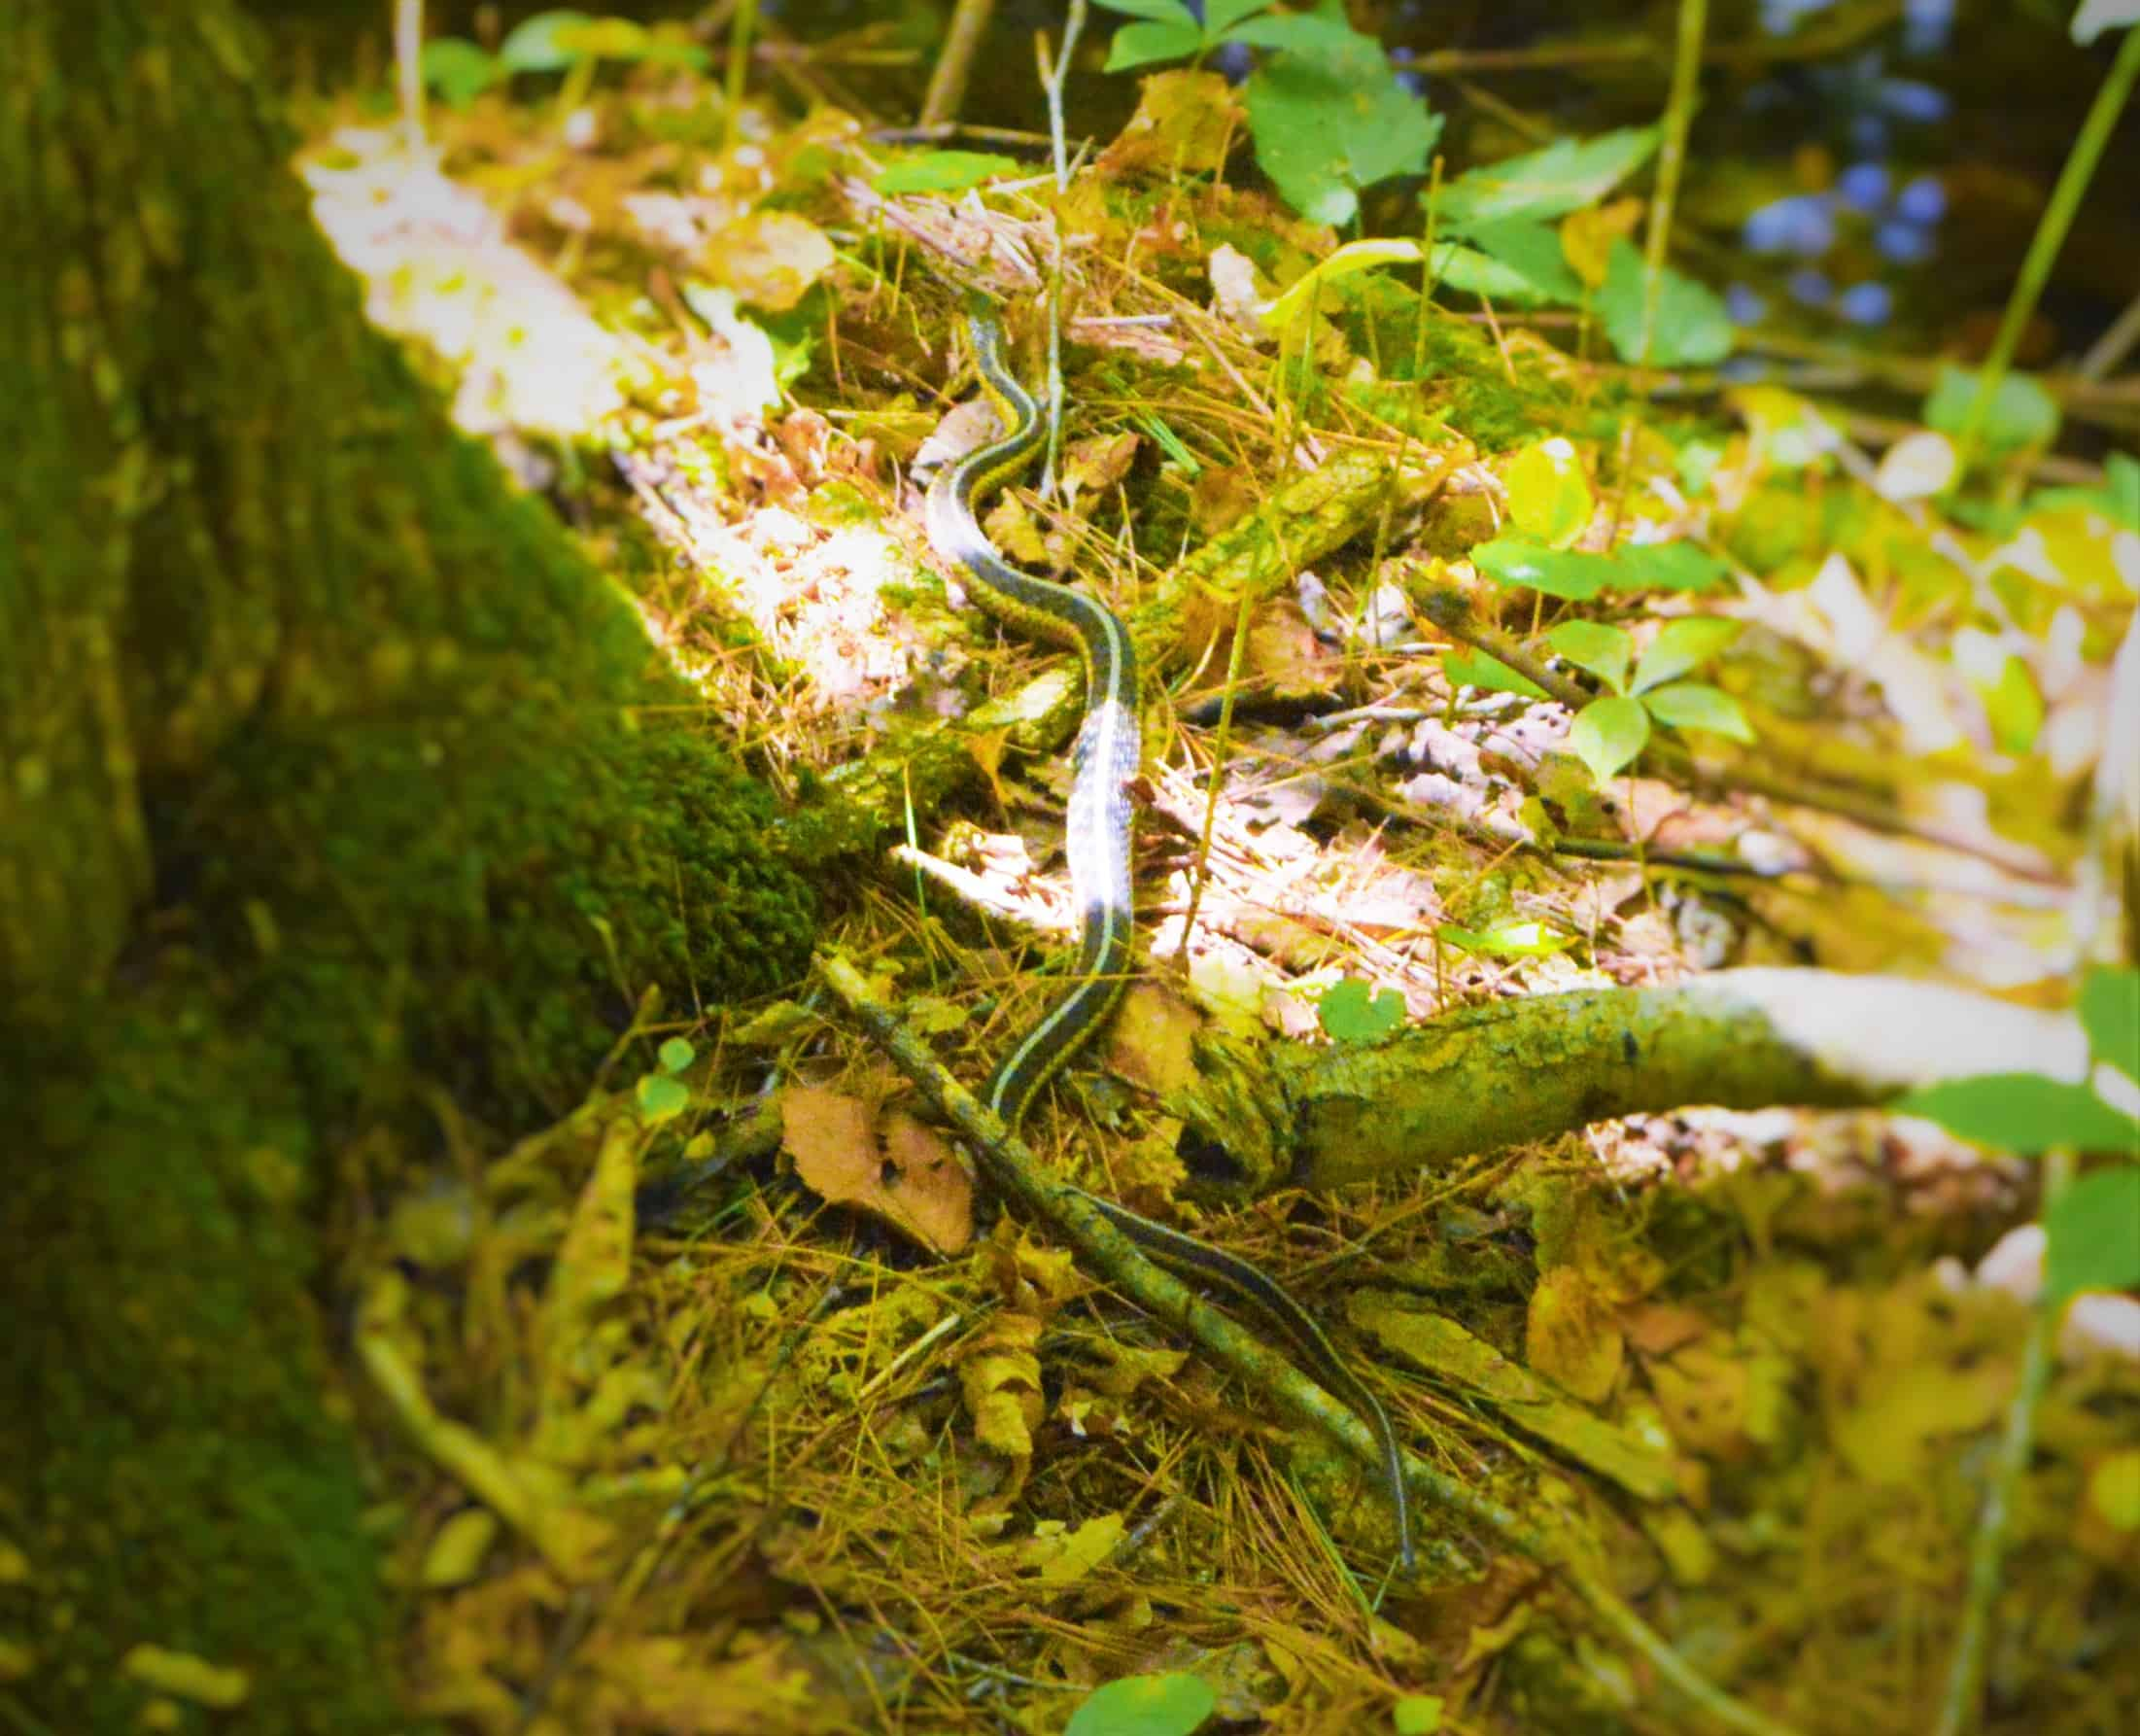 snake on rivers edge